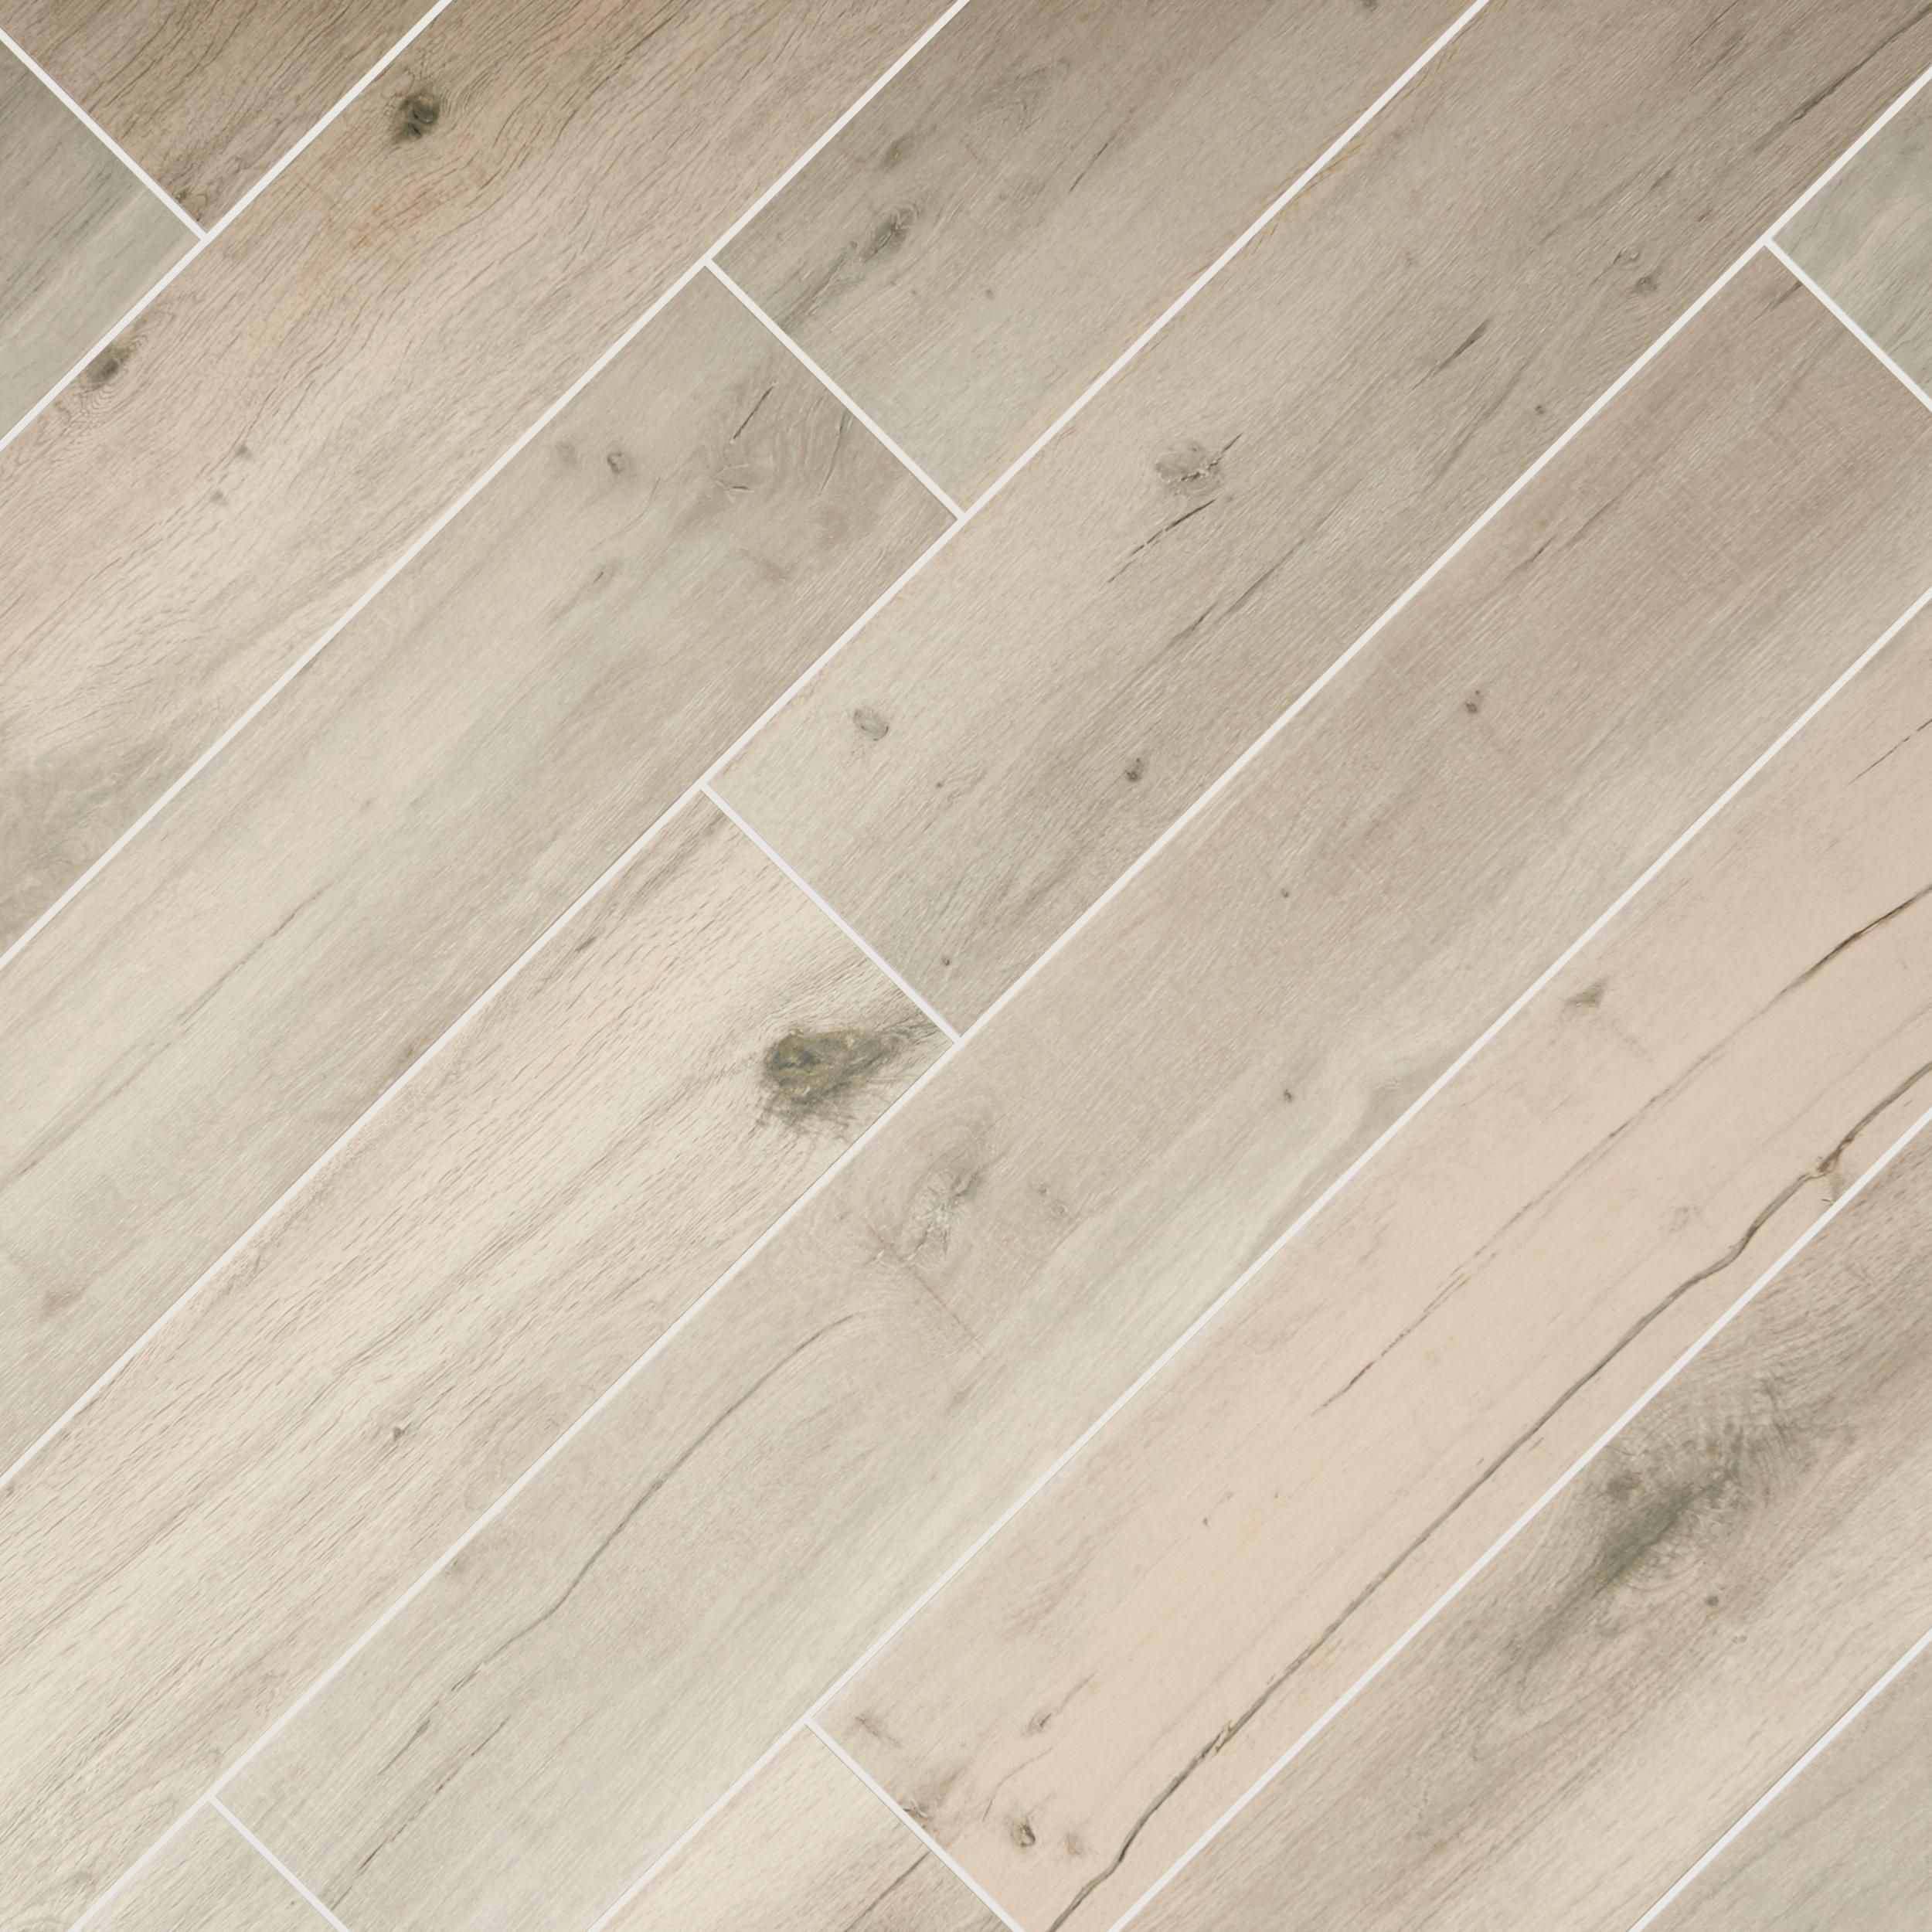 ambience hardwood flooring reviews of birch hardwood flooring natural ambiance black walnut exclusive in reviews birch hardwood flooring this gray wood look birch forest gray wood plank porcelain tile is